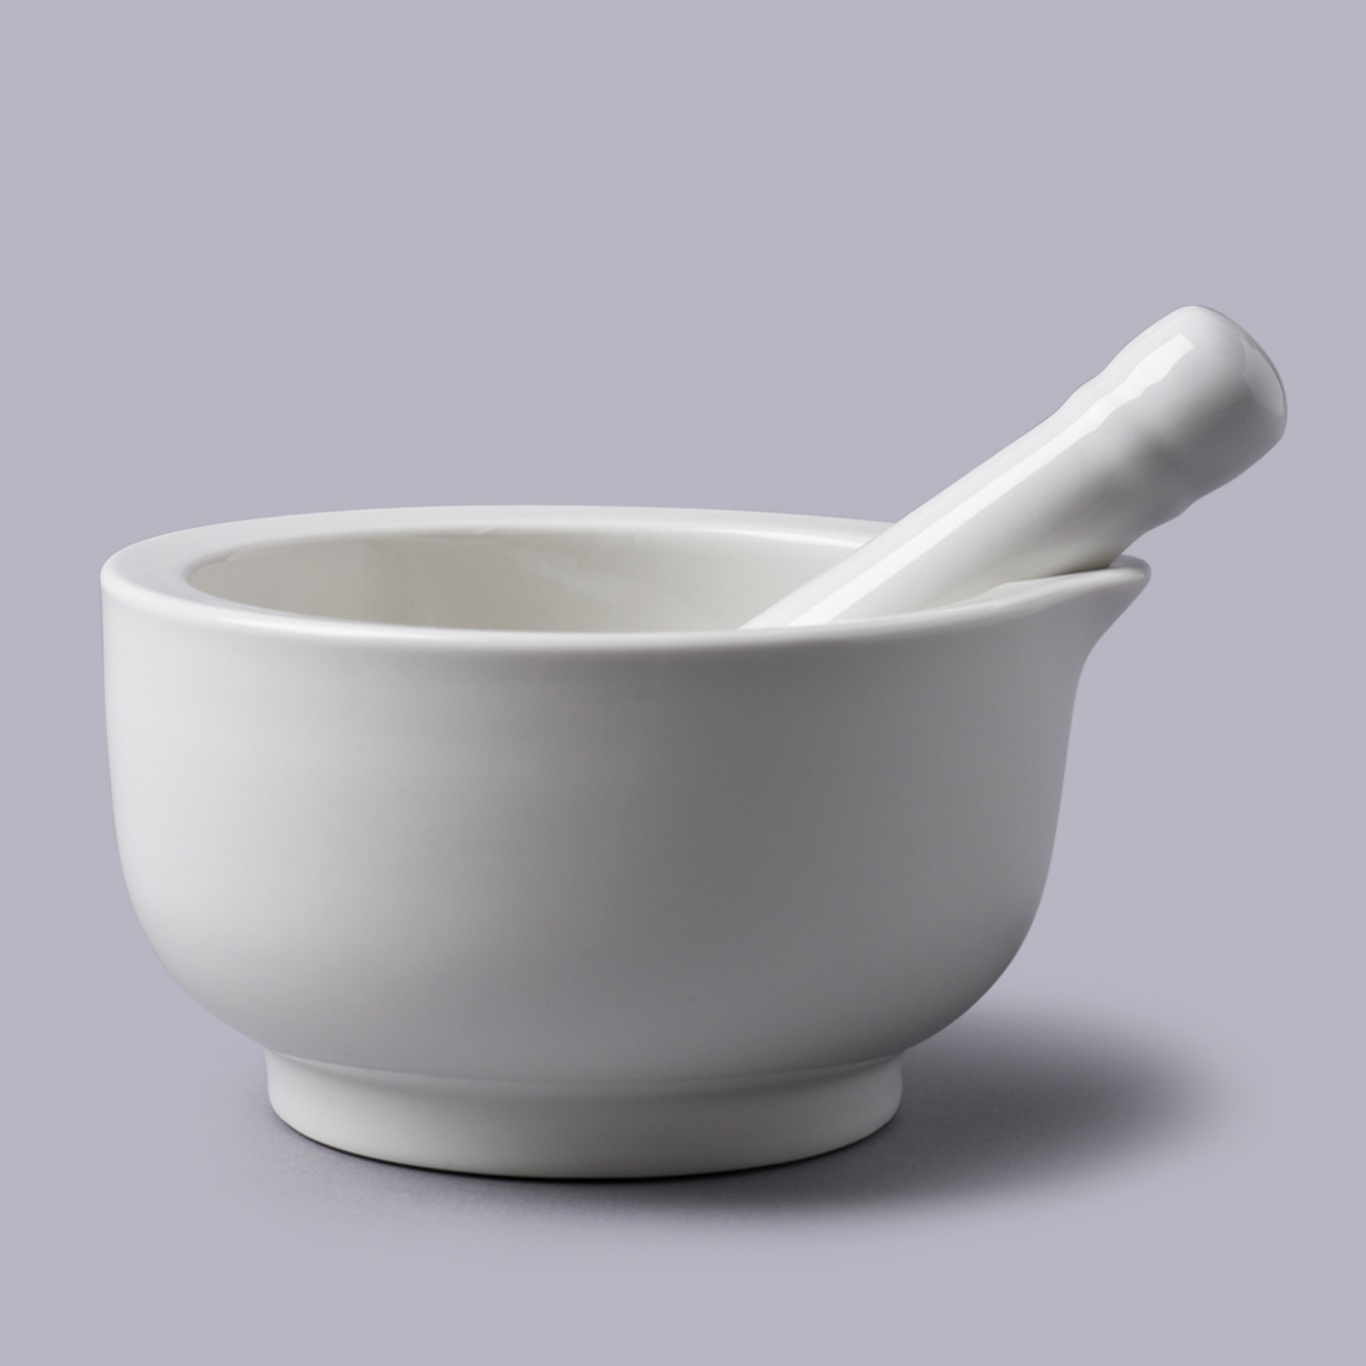 Image of Mortar & Pestle 14cm